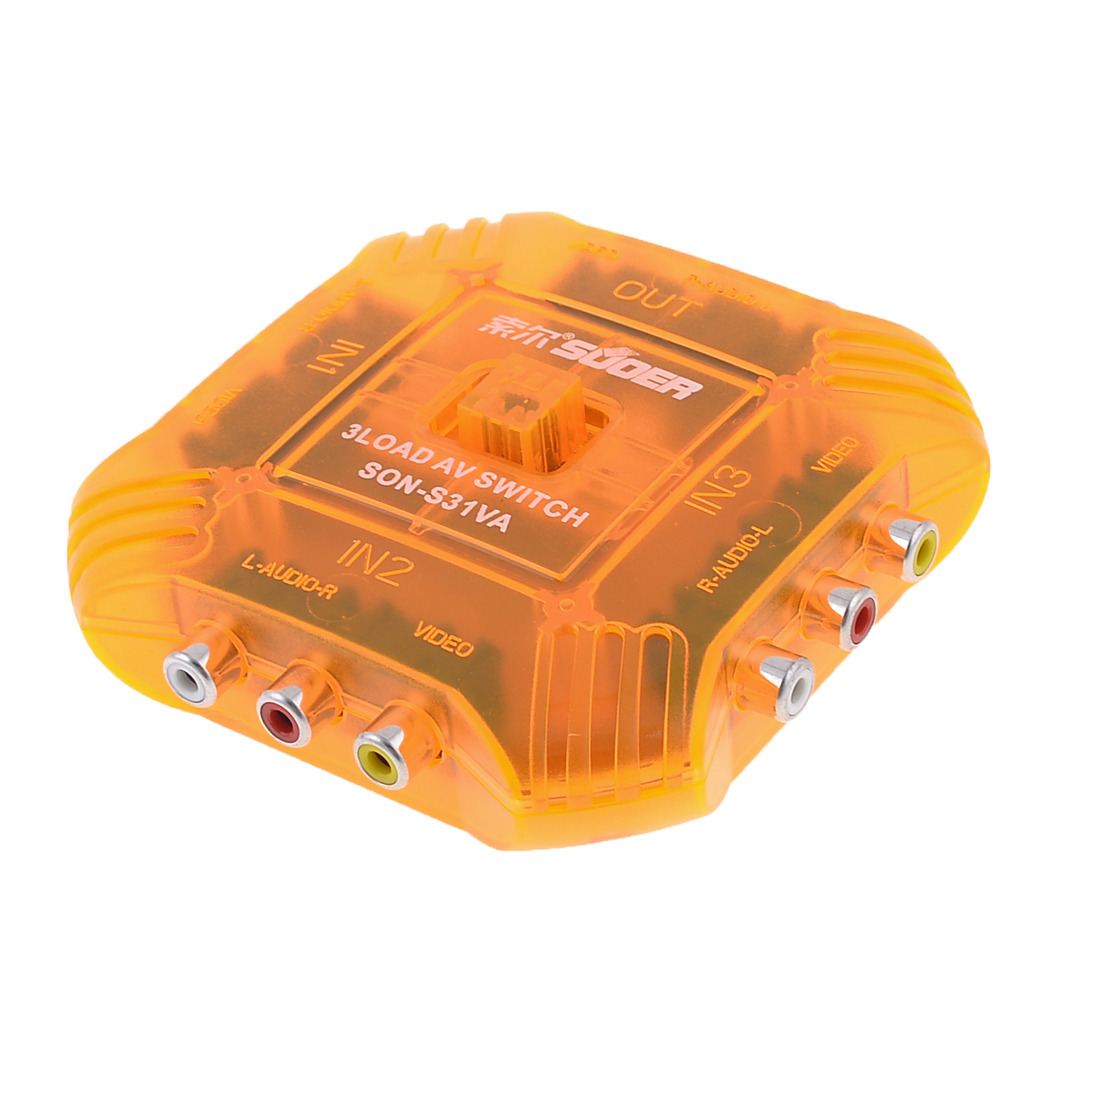 3 Input 1 Output Composite Audio Video Switch Orange for VCD DVD